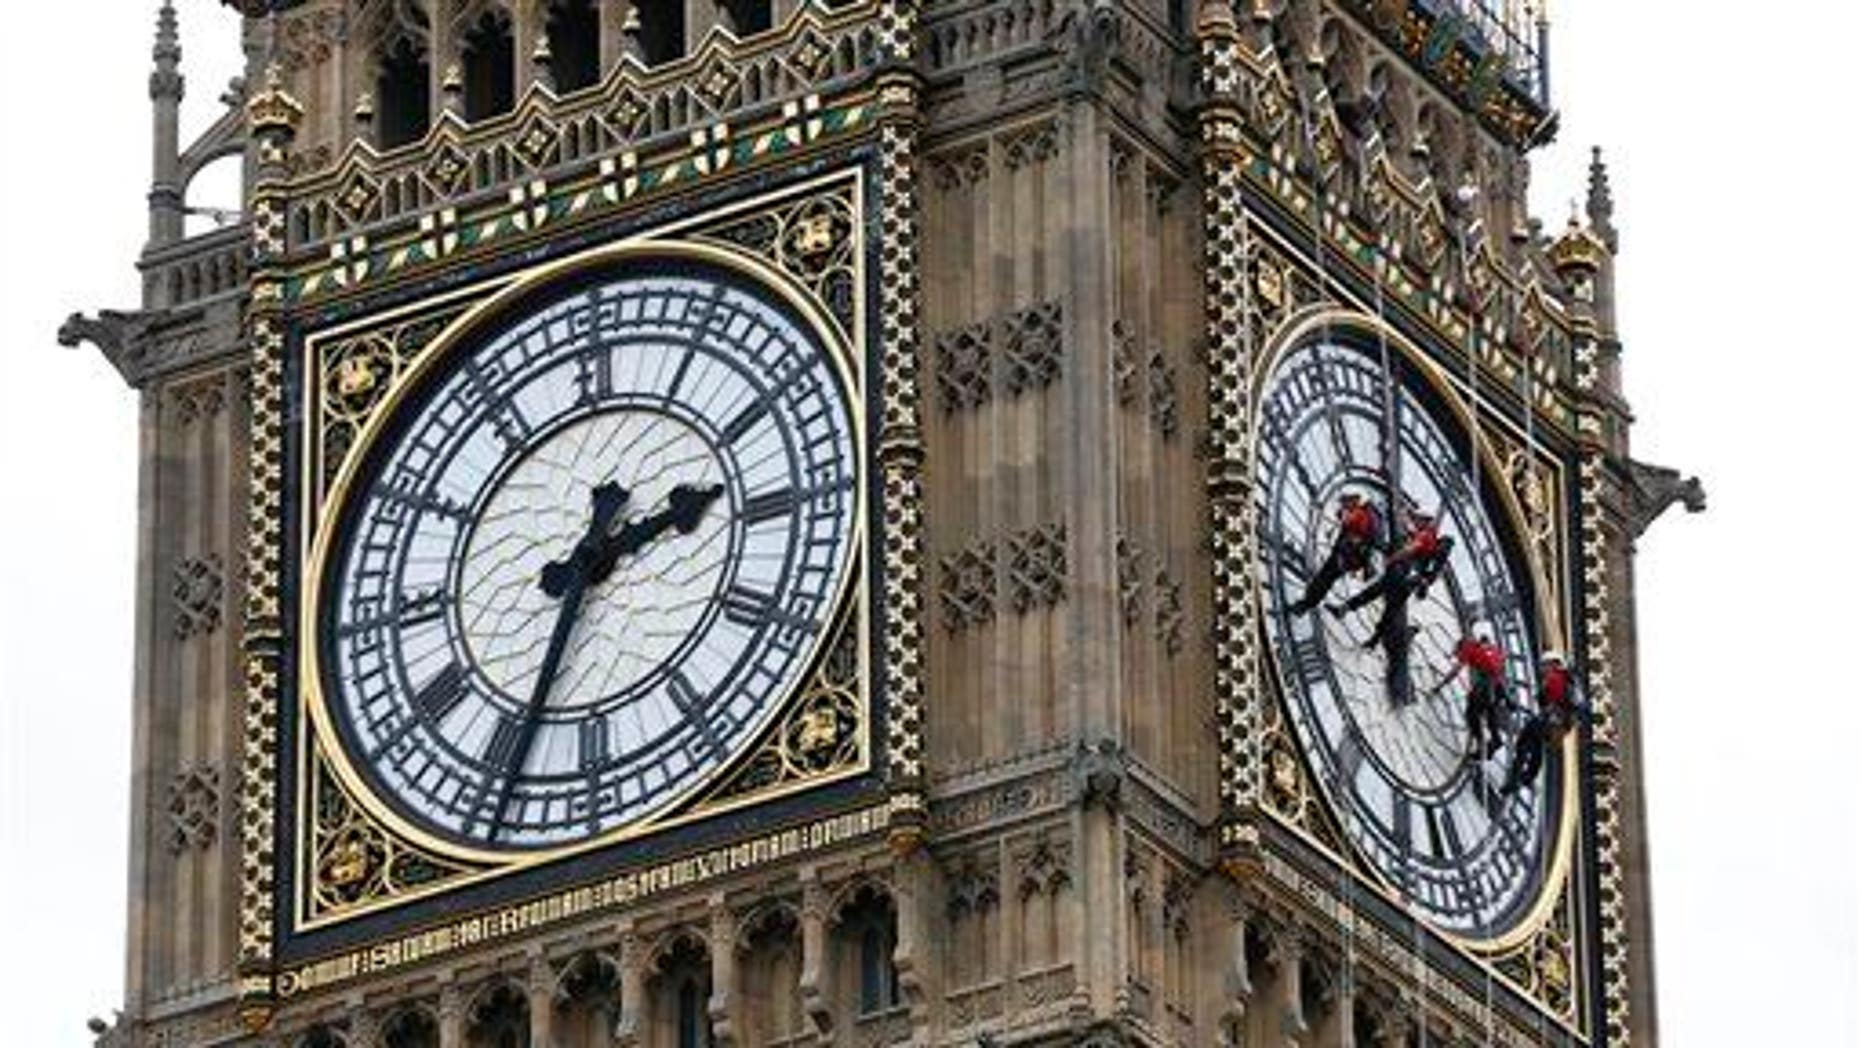 Workers clean the face of Big Ben in London.